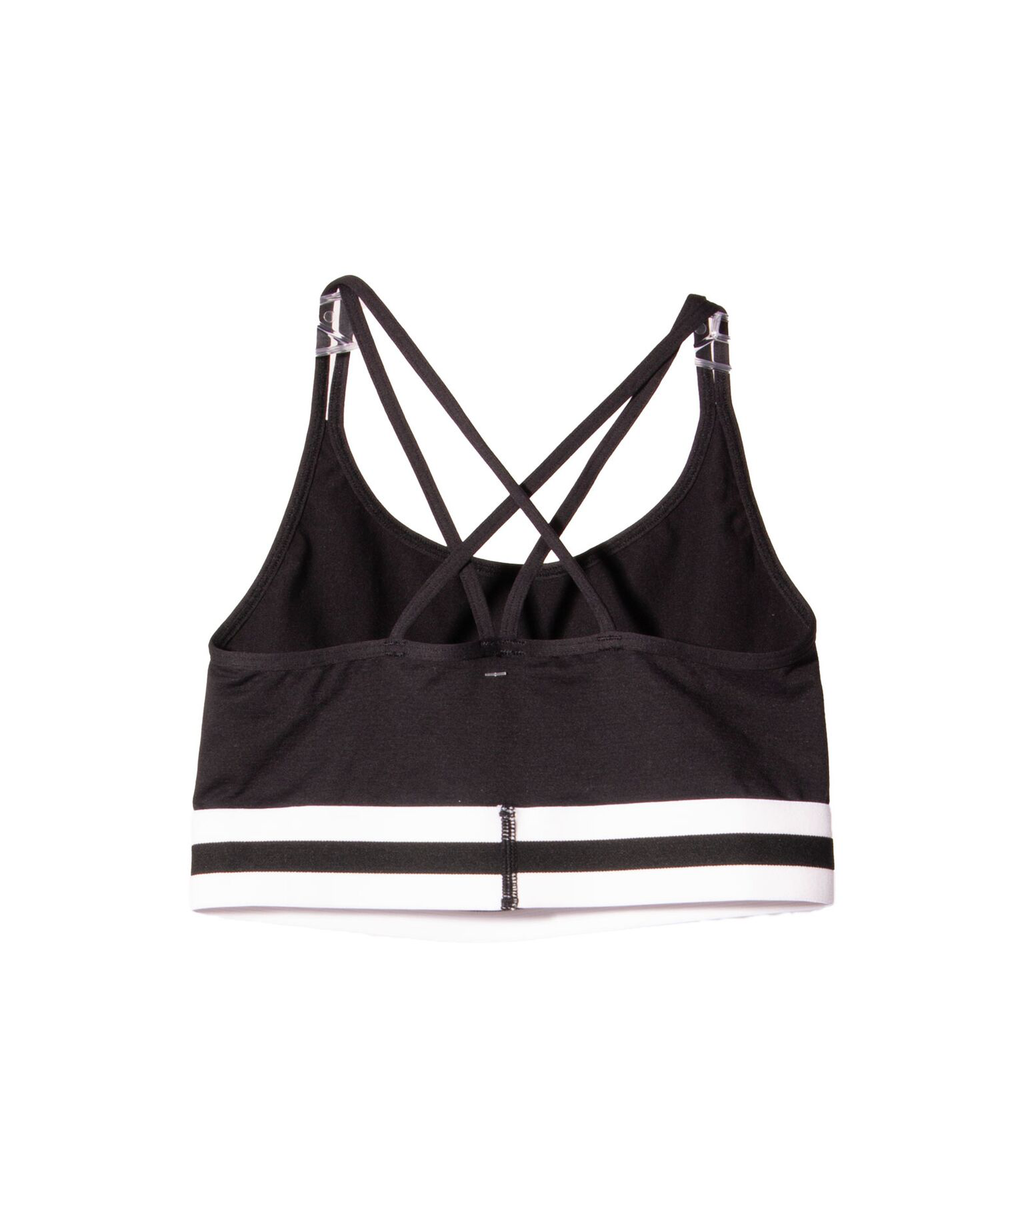 Malibu Sugar Black White Band Bra